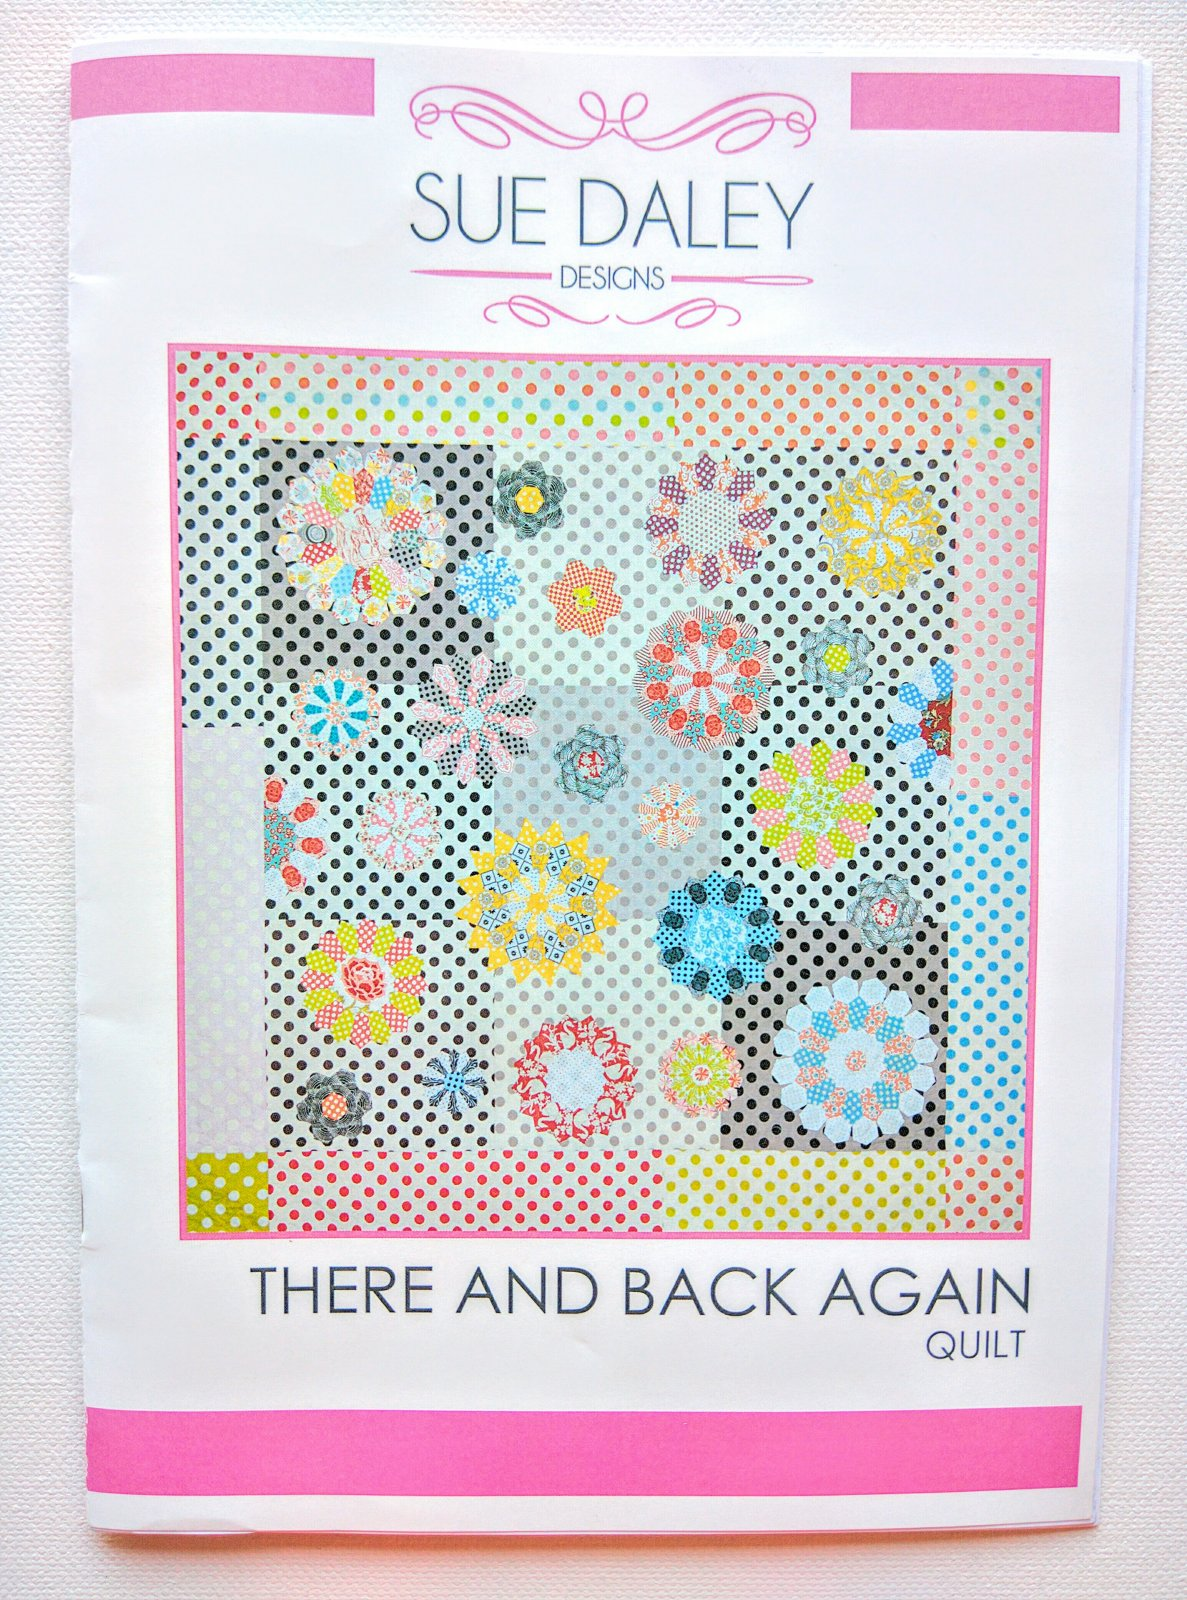 There and Back Again- Sue Daley Designs- English Paper Piecing Kit